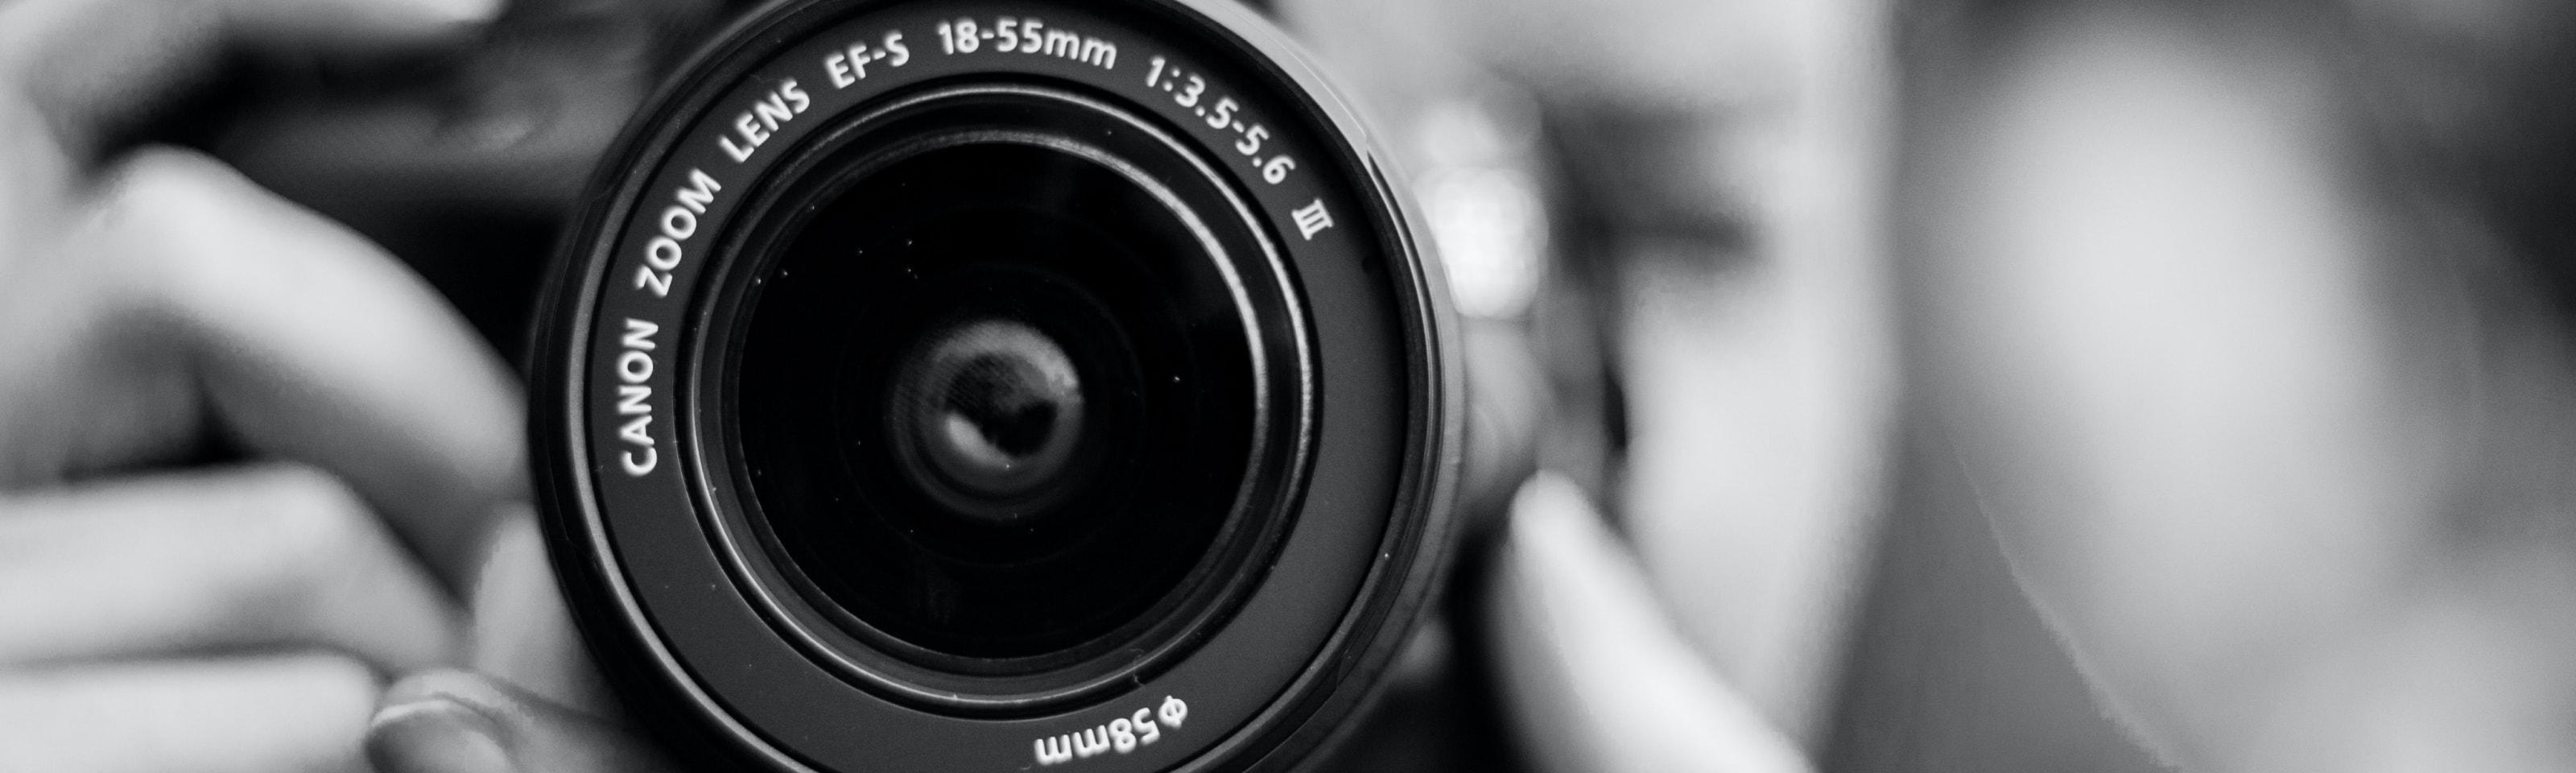 Black and white photo of Canon camera lens